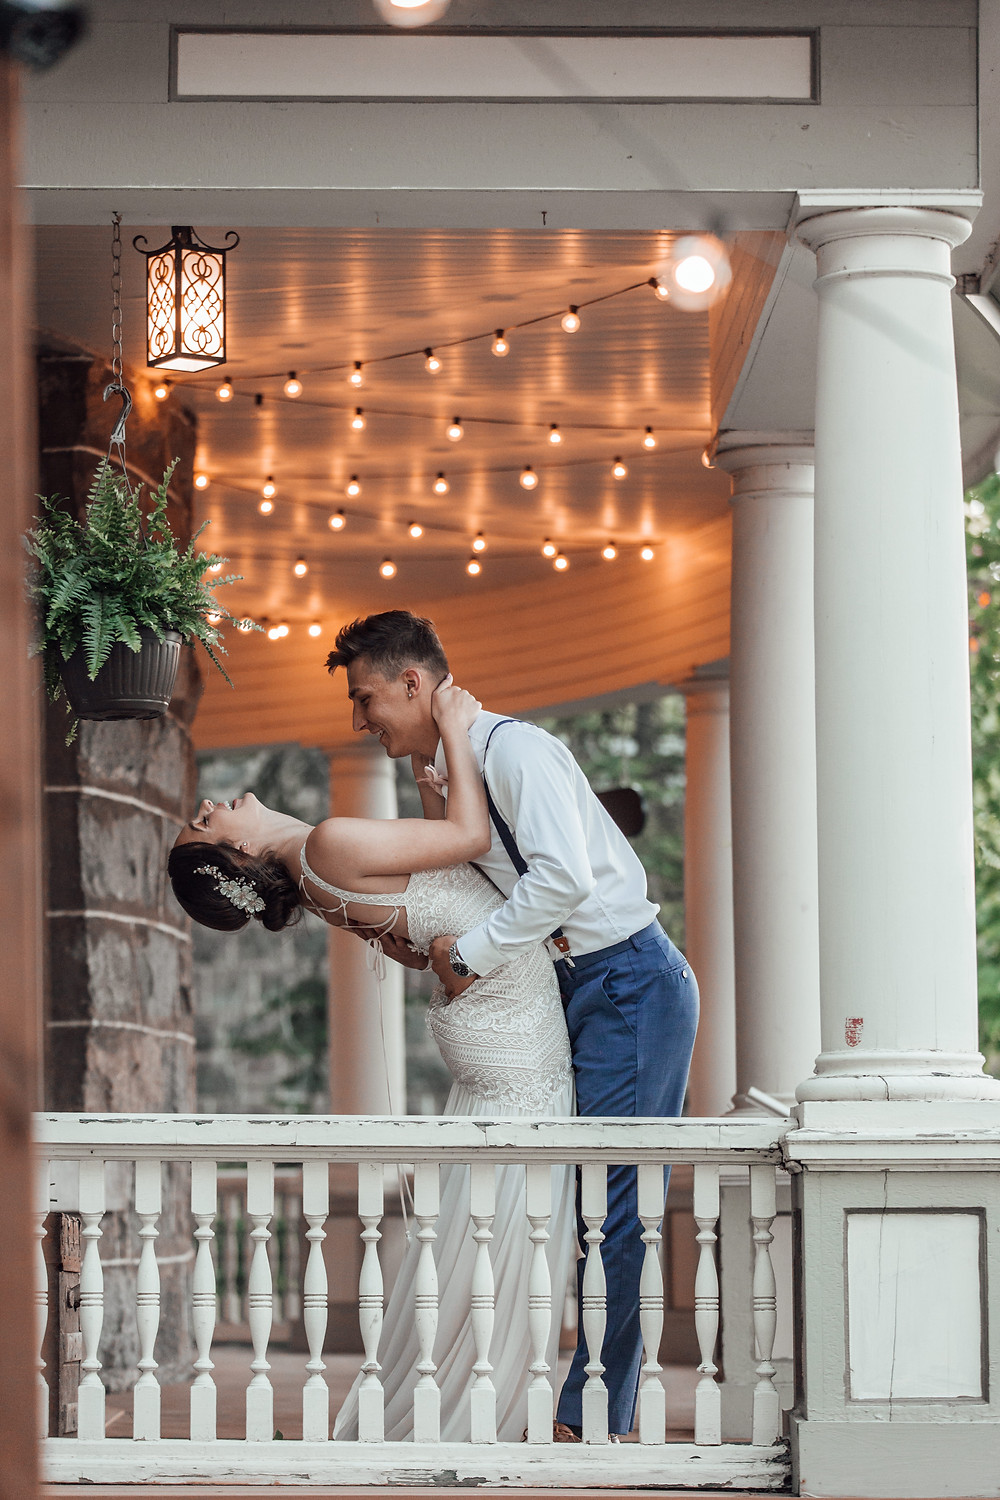 Explore wedding venues within your province